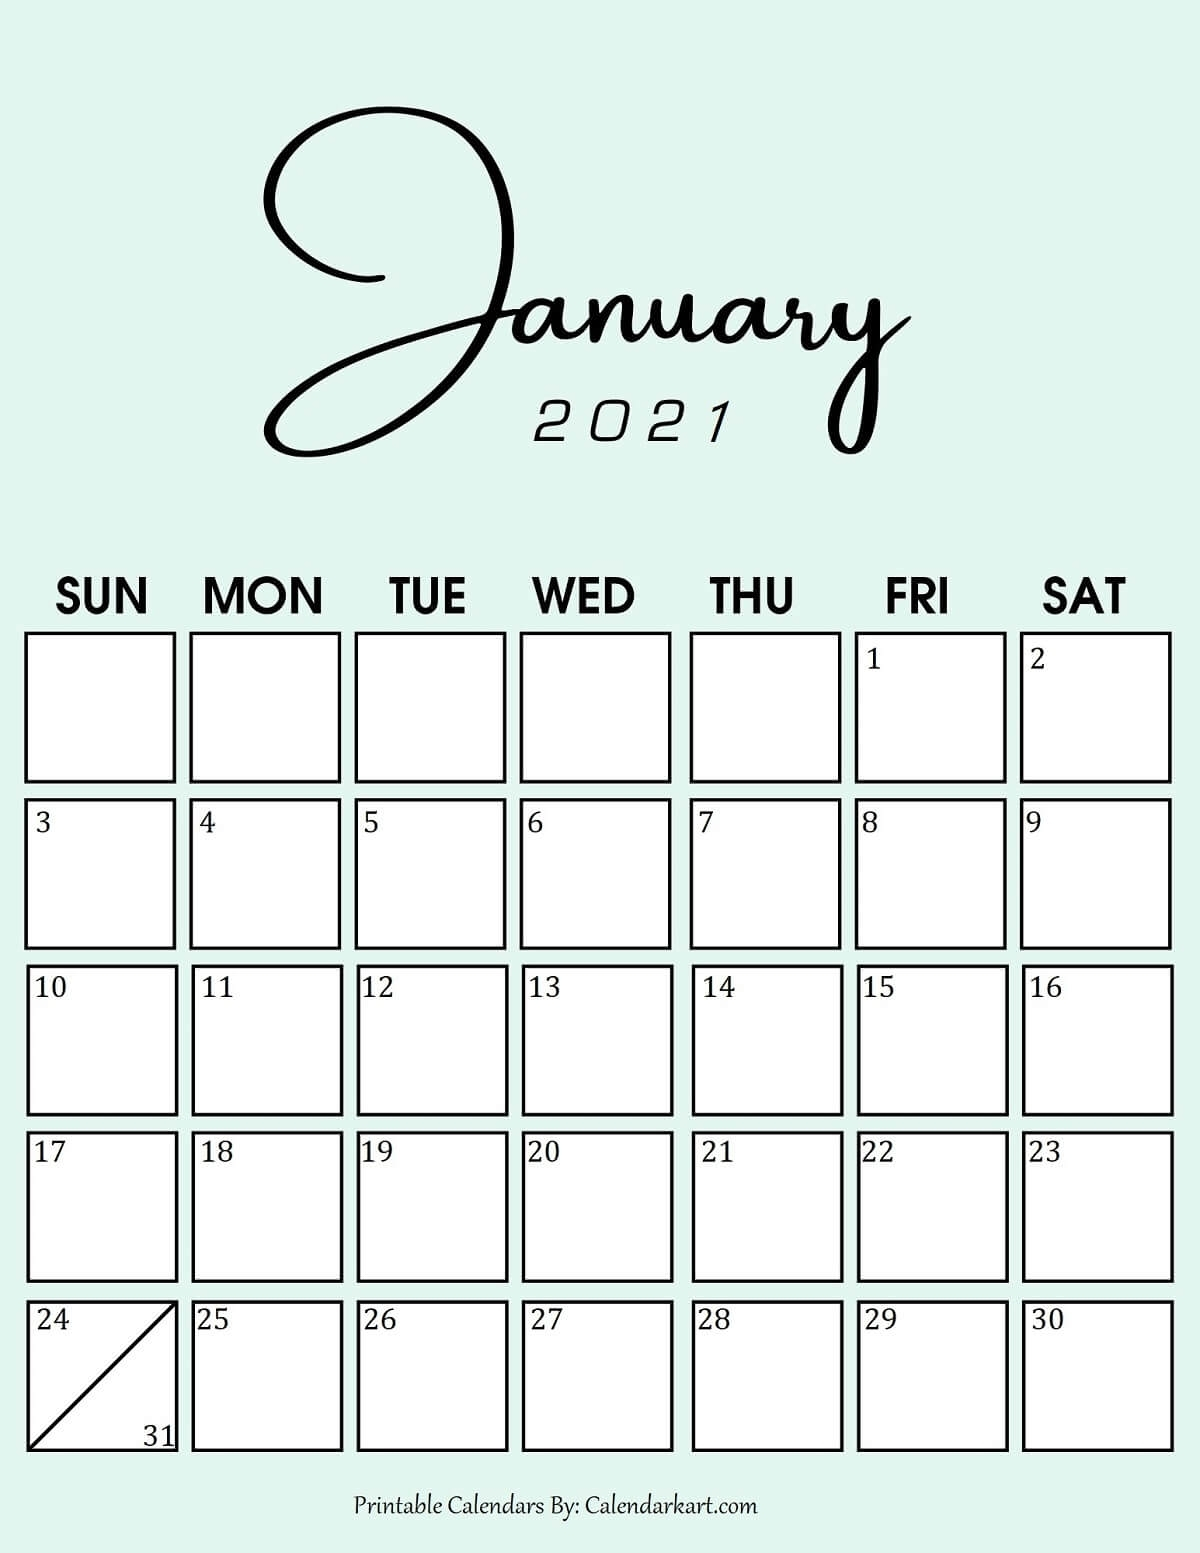 Get Printable Calendar 2021 I Can Type On